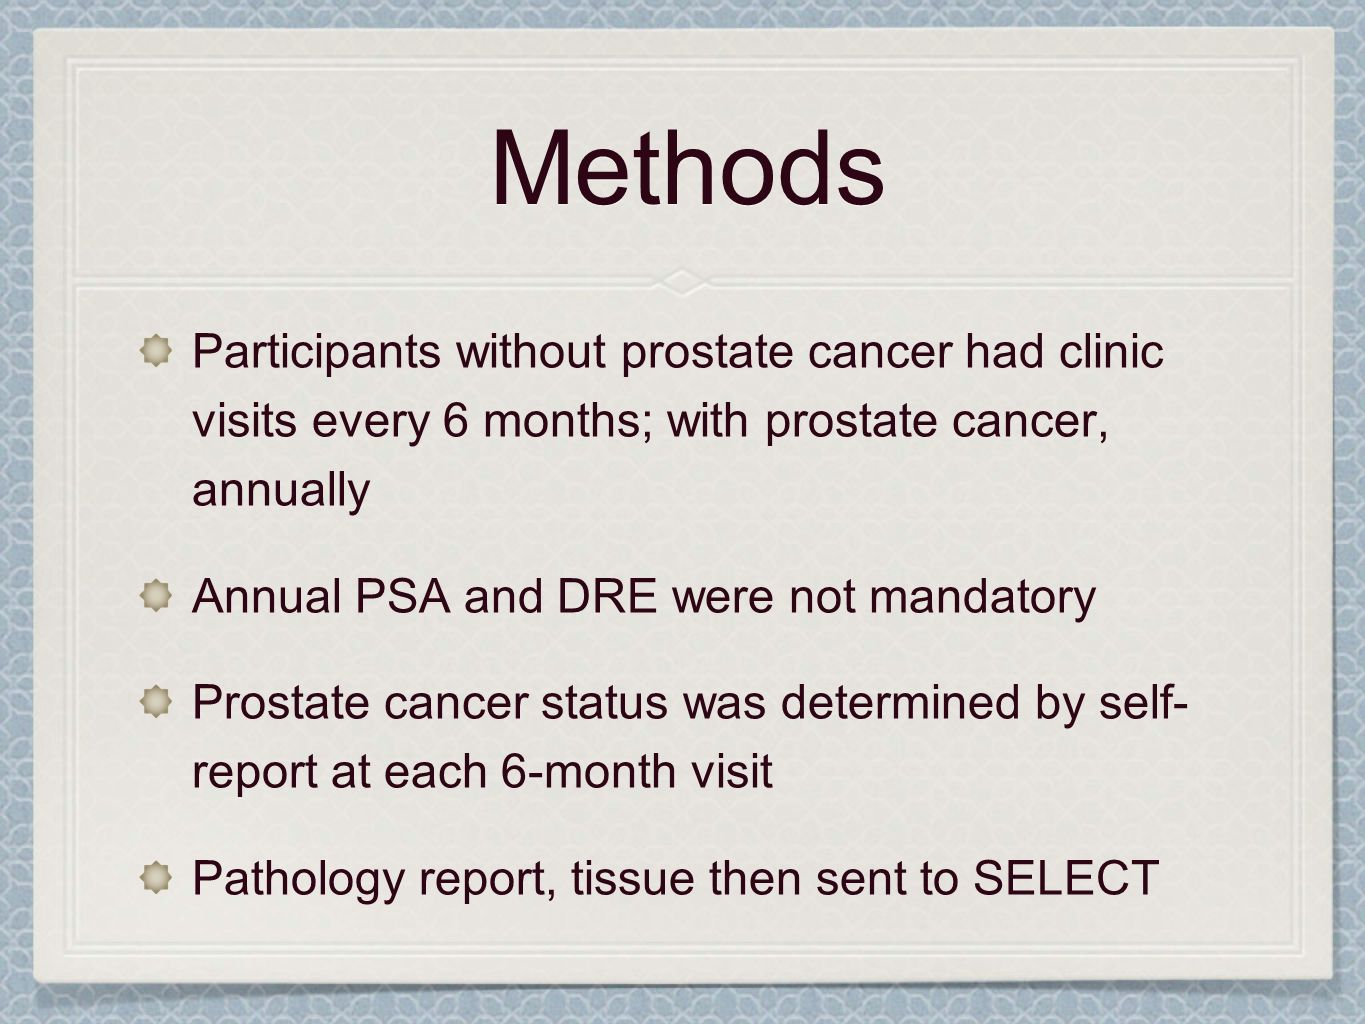 MethodsParticipants without prostate cancer had clinic visits every 6 months; with prostate cancer, annually.